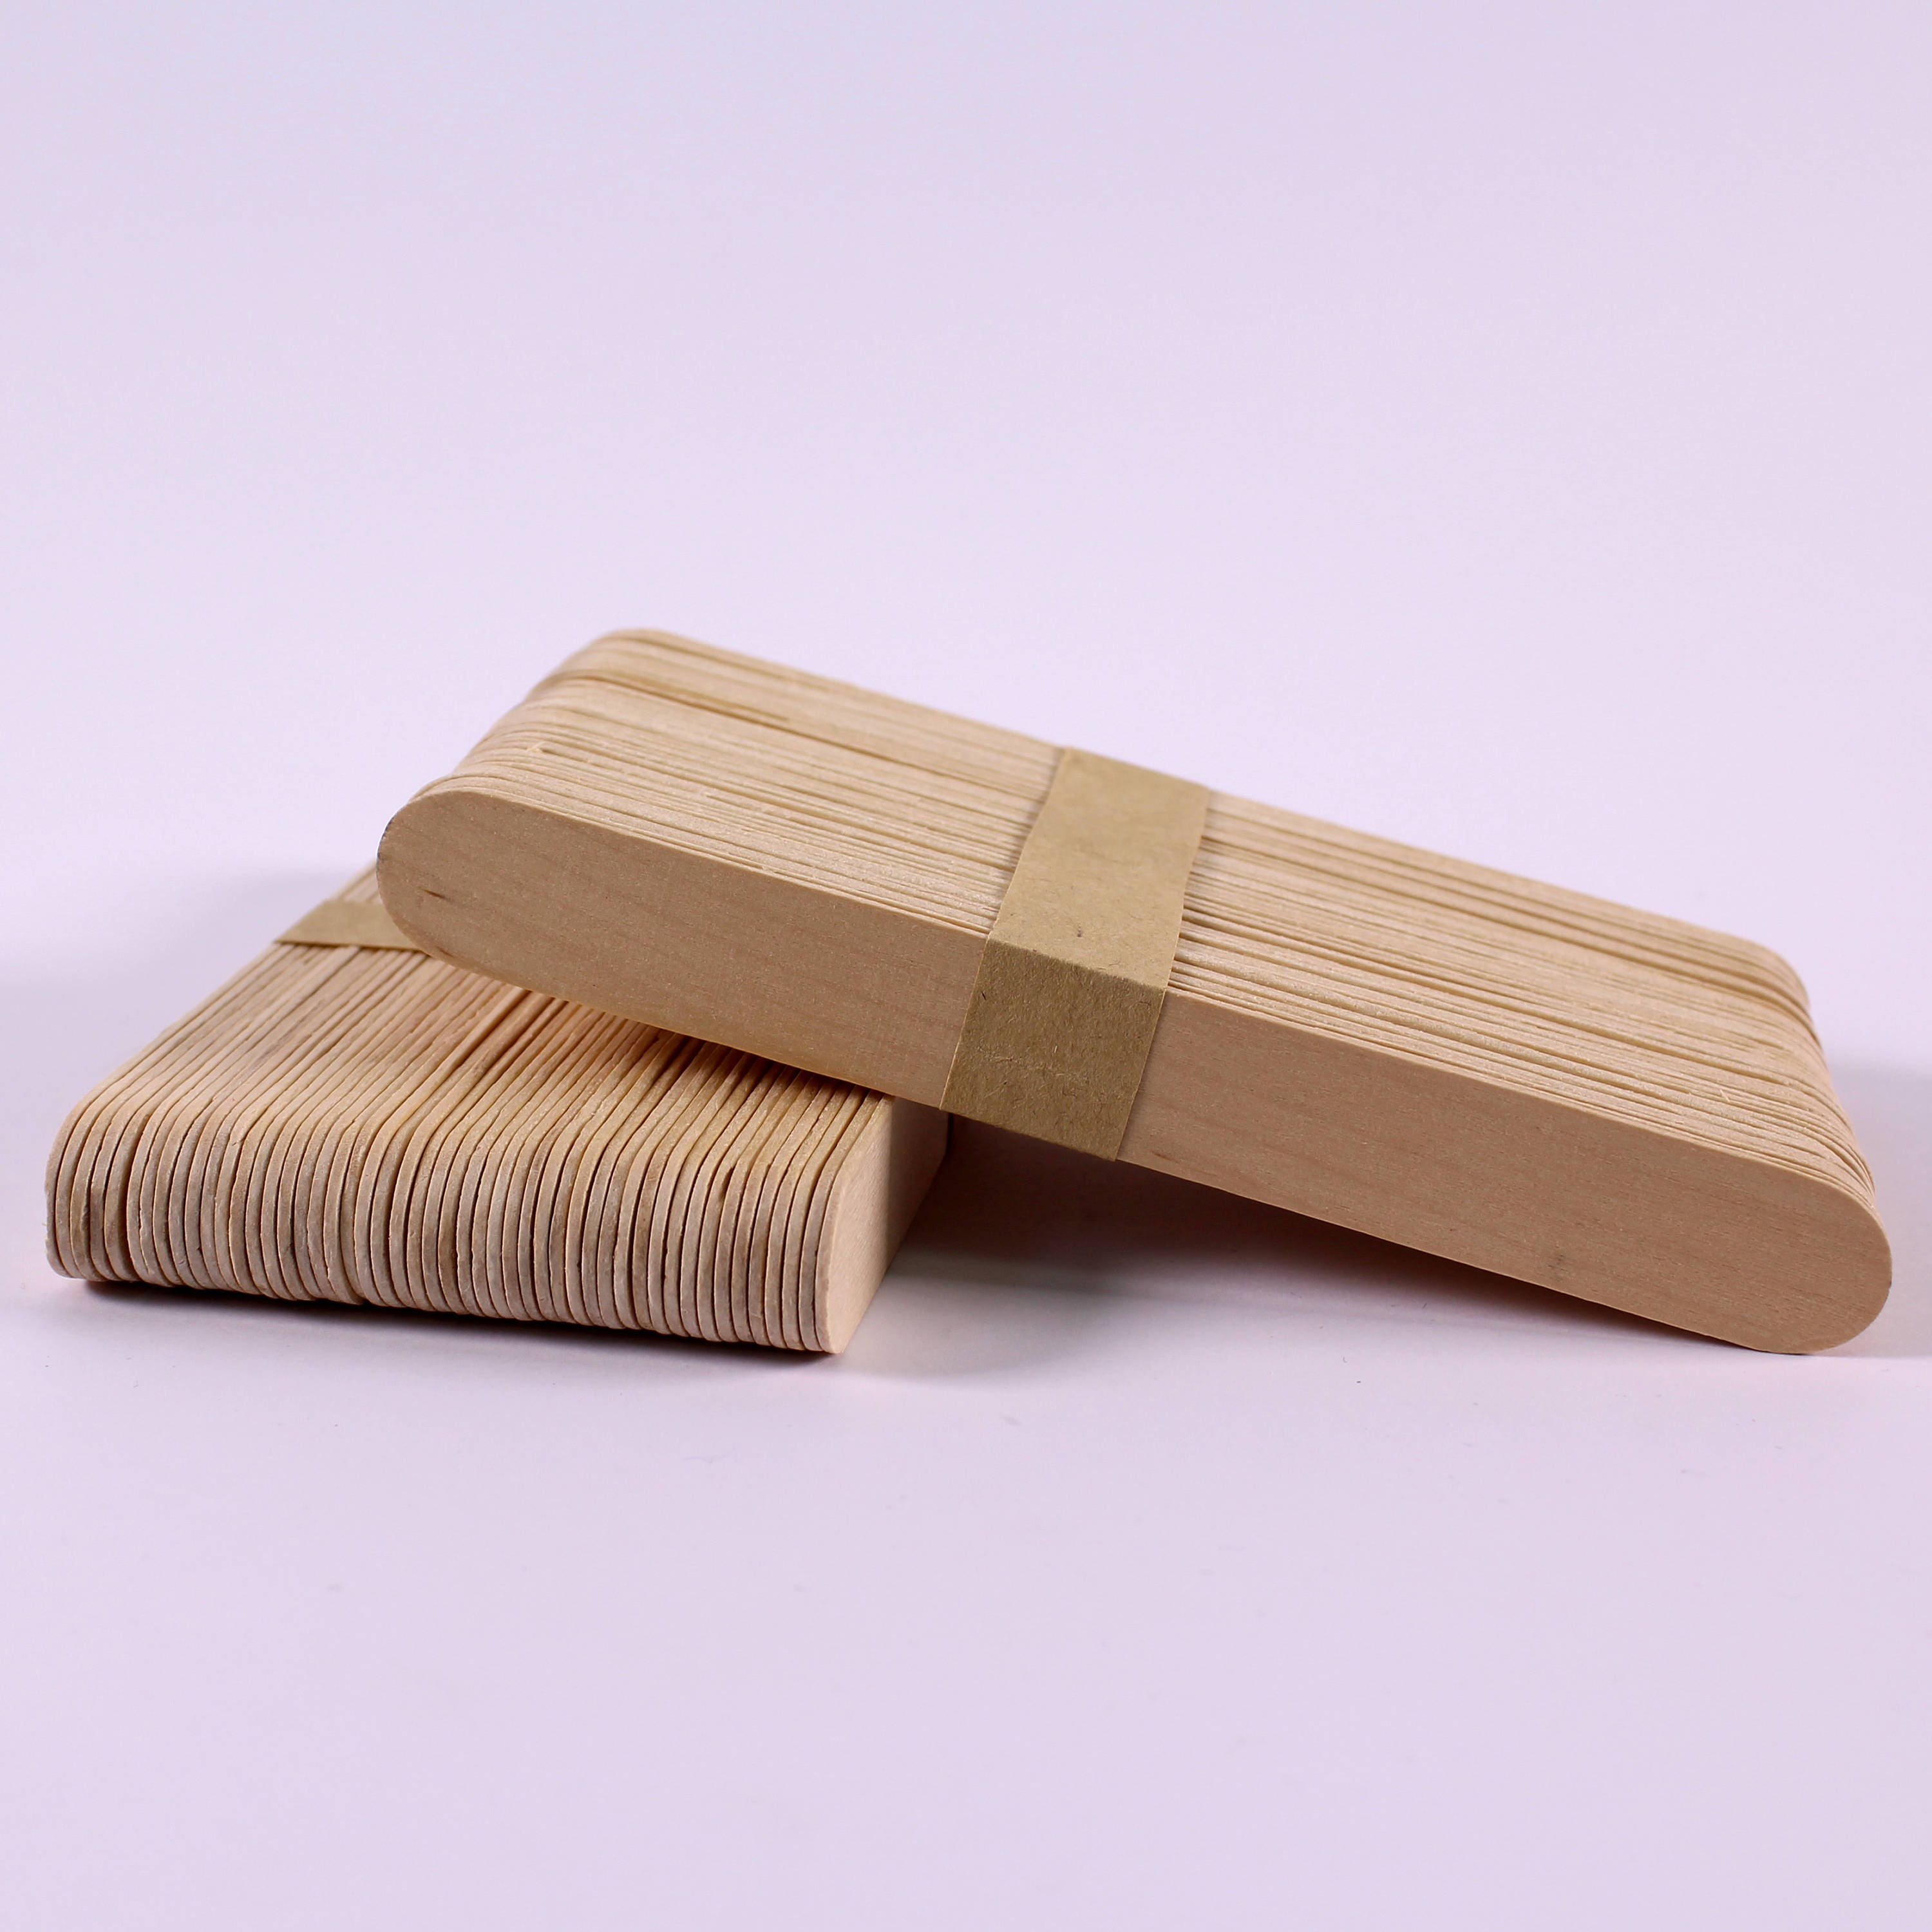 Long wooden craft sticks - Giant Plain Lolly Stick 15cm X 2cm Wooden Natural Colour Extra Long Craft Sticks For Modelling